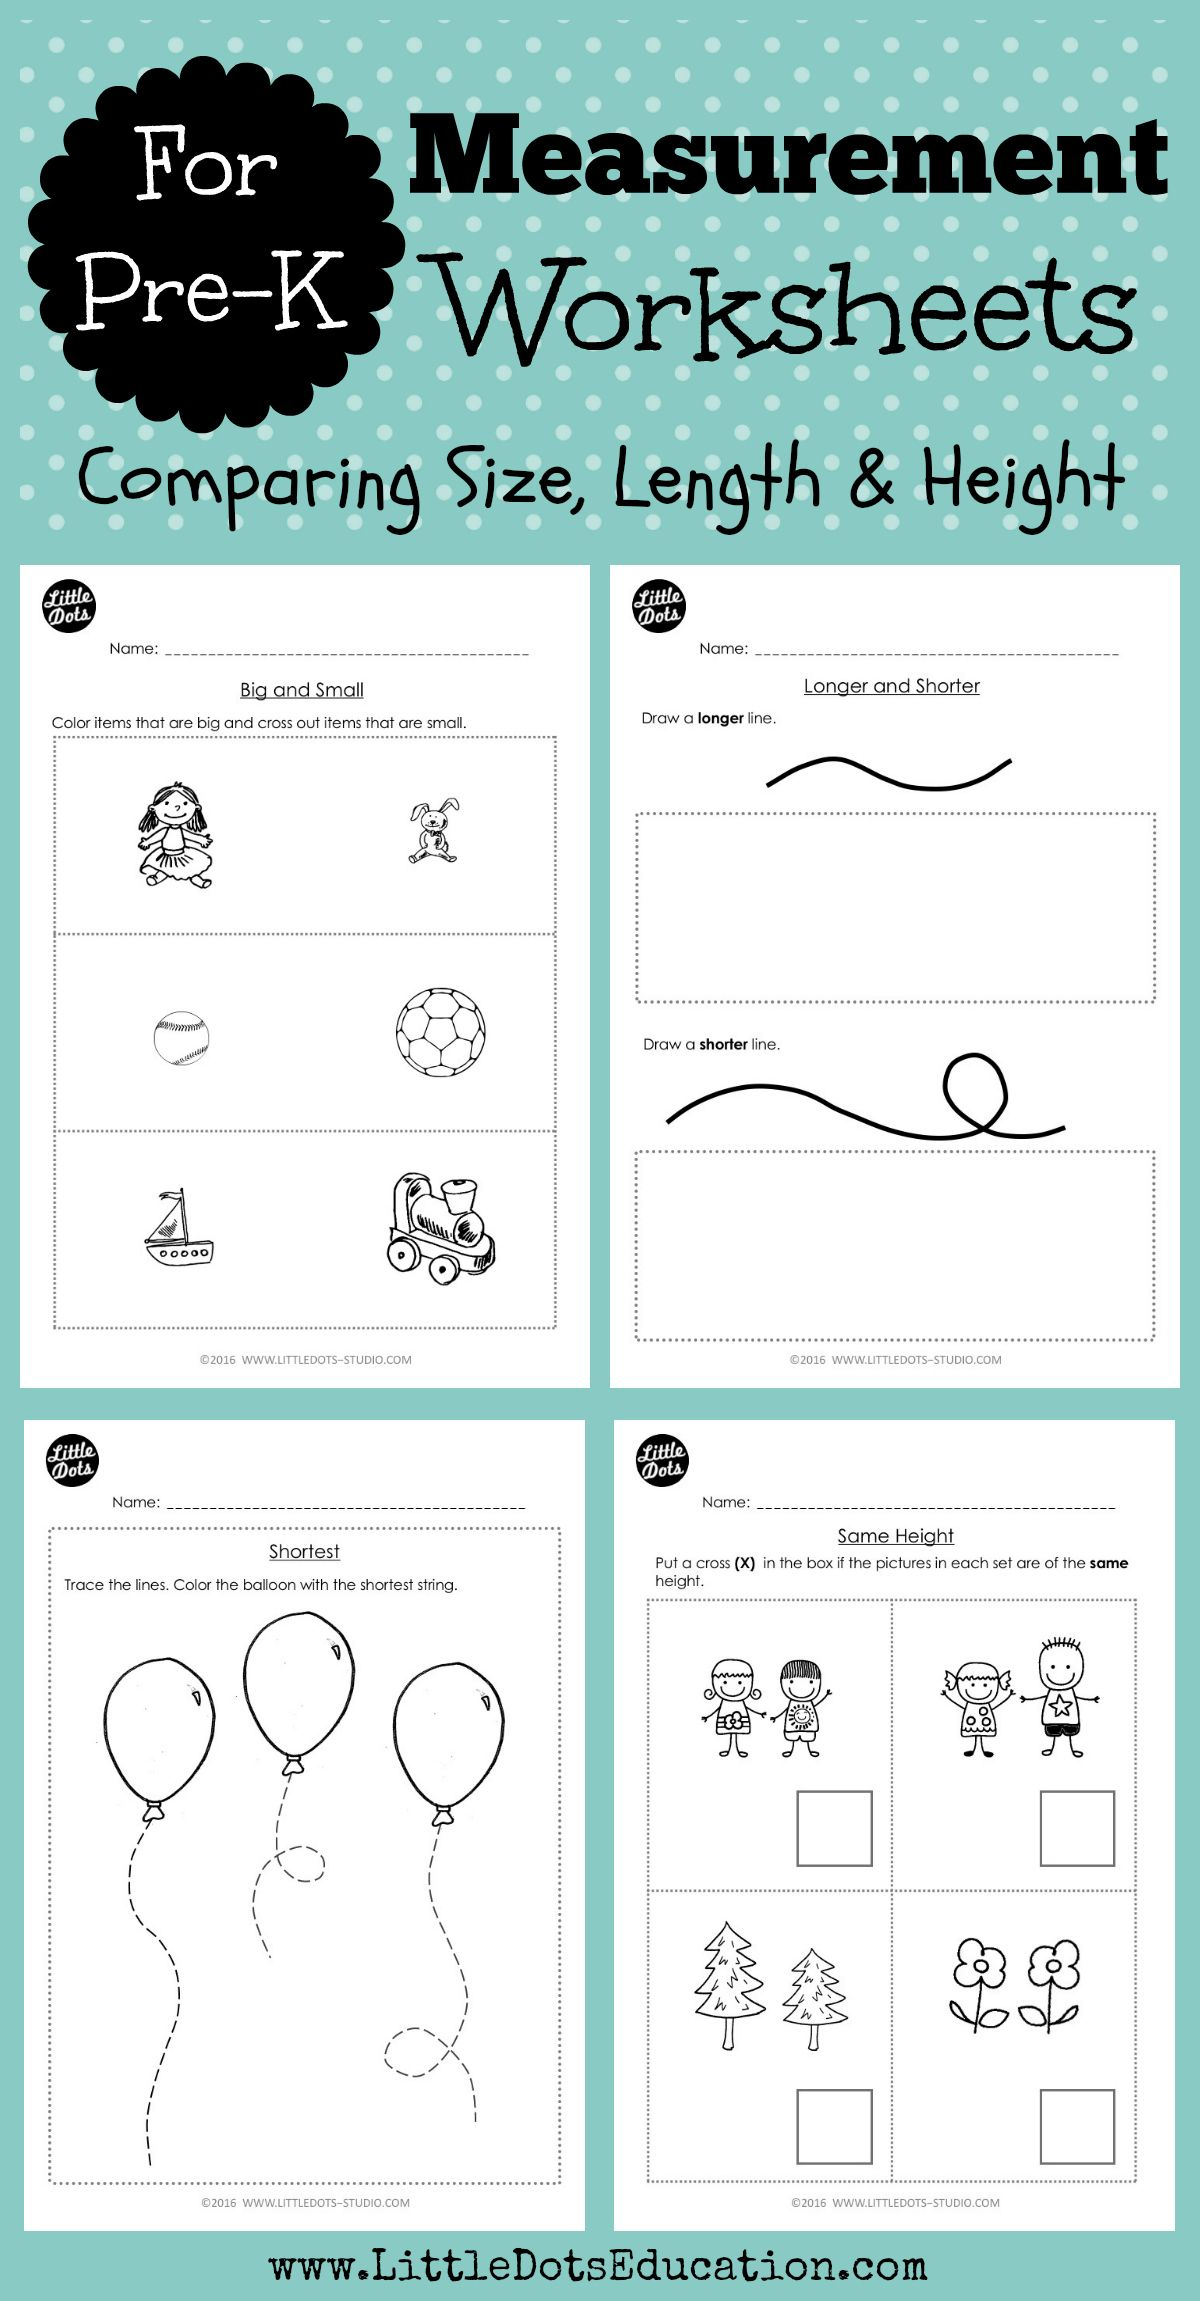 Download Worksheets And Activities To Compare Size Length